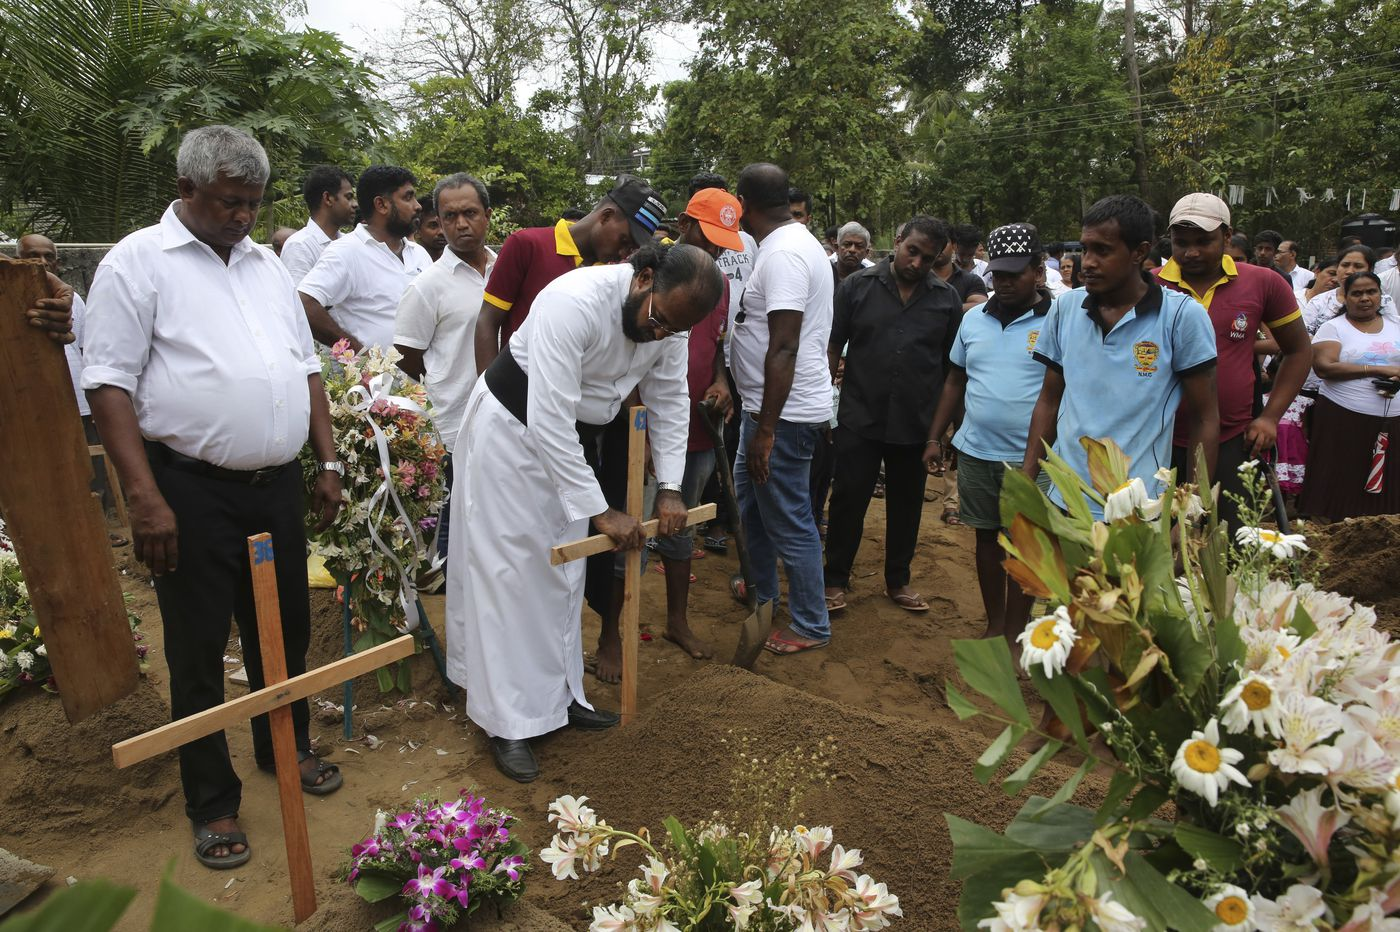 Let's be honest about the persecution of Christians in Sri Lanka and beyond   Christine Flowers